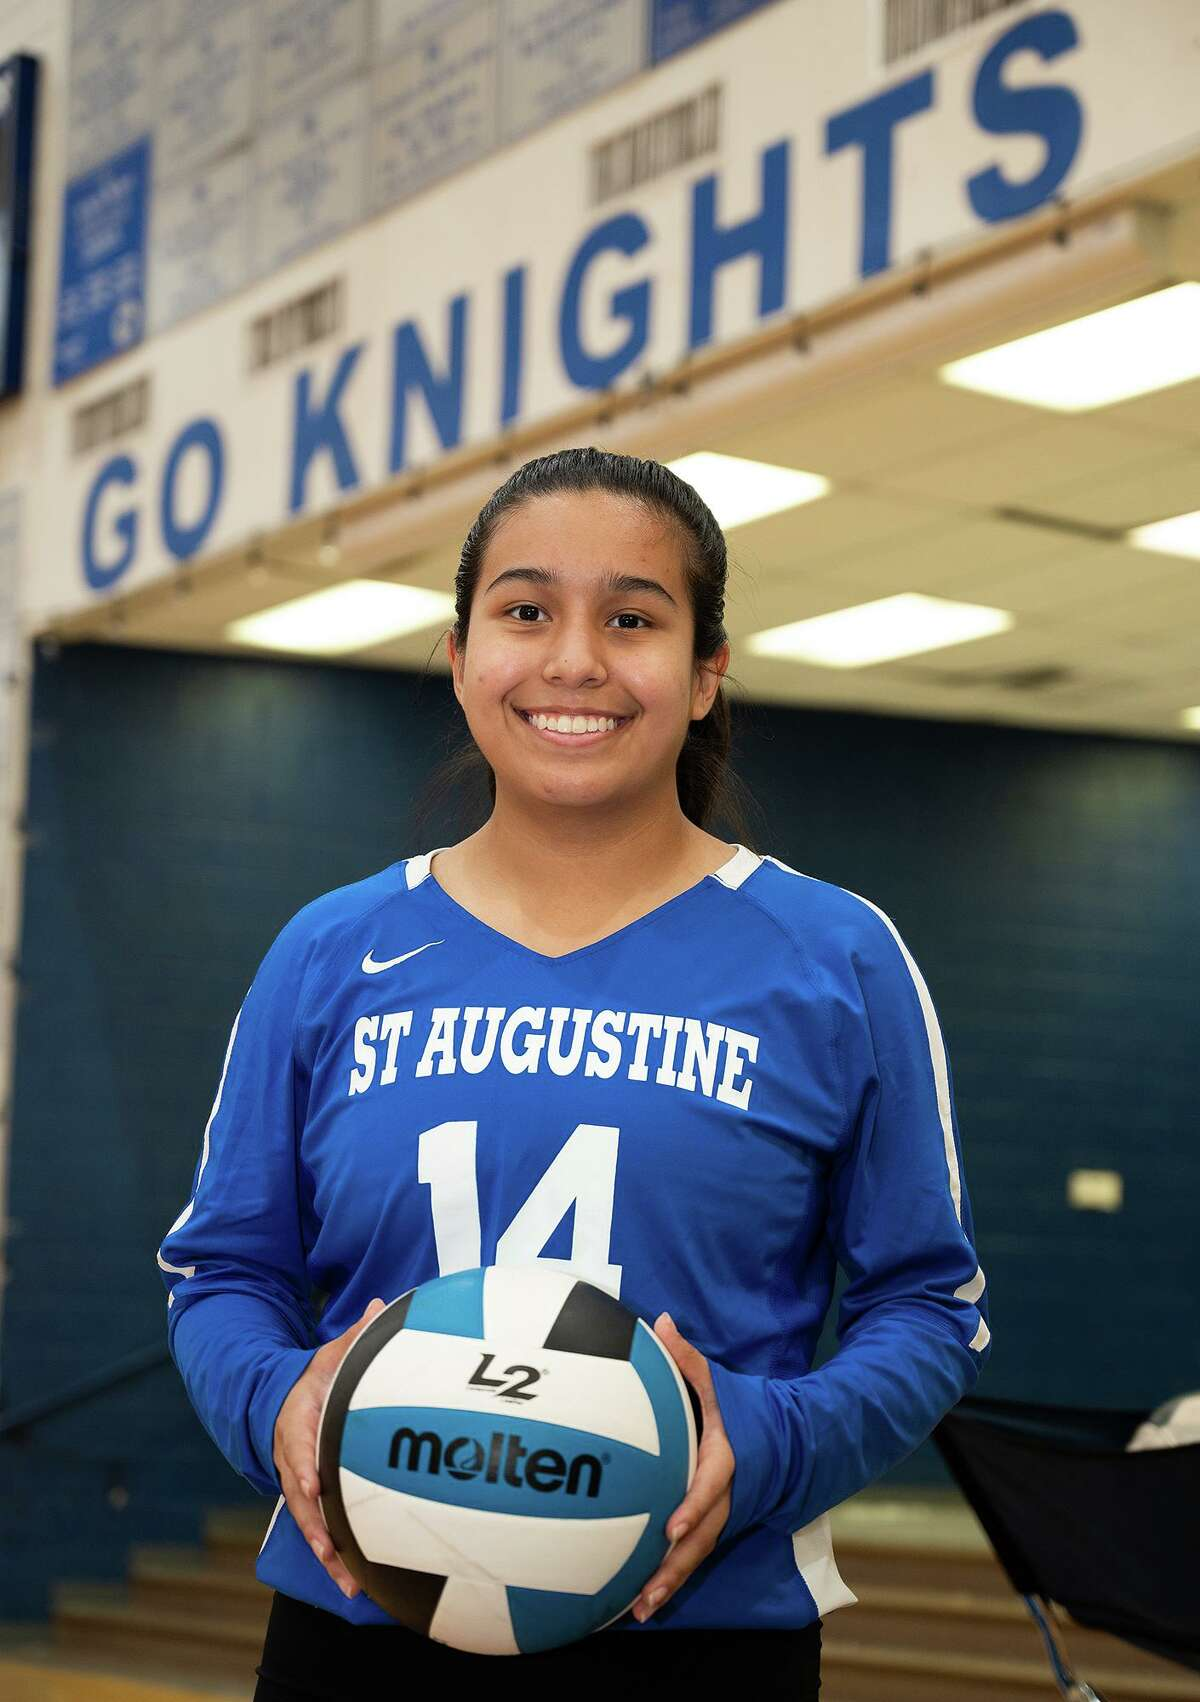 St. Augustine High School volleyball player Mia Rose Flores poses for a feature photo, Thursday, Sept. 30, 2021, at the St. Augustine High School Wellness Center.